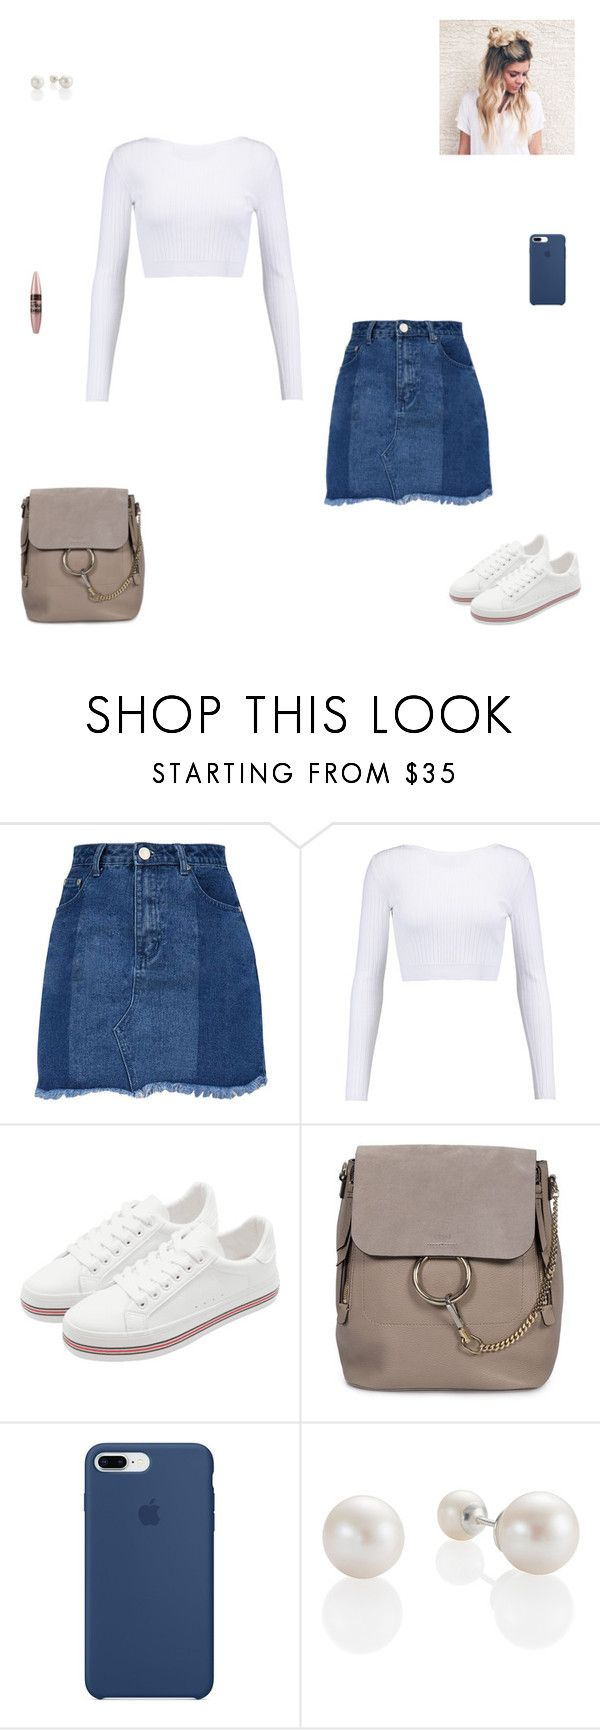 """""""Trendy outfit #8"""" by synclairel ❤ liked on Polyvore featuring Cushnie Et Ochs, Chloé, Apple and Maybelline"""